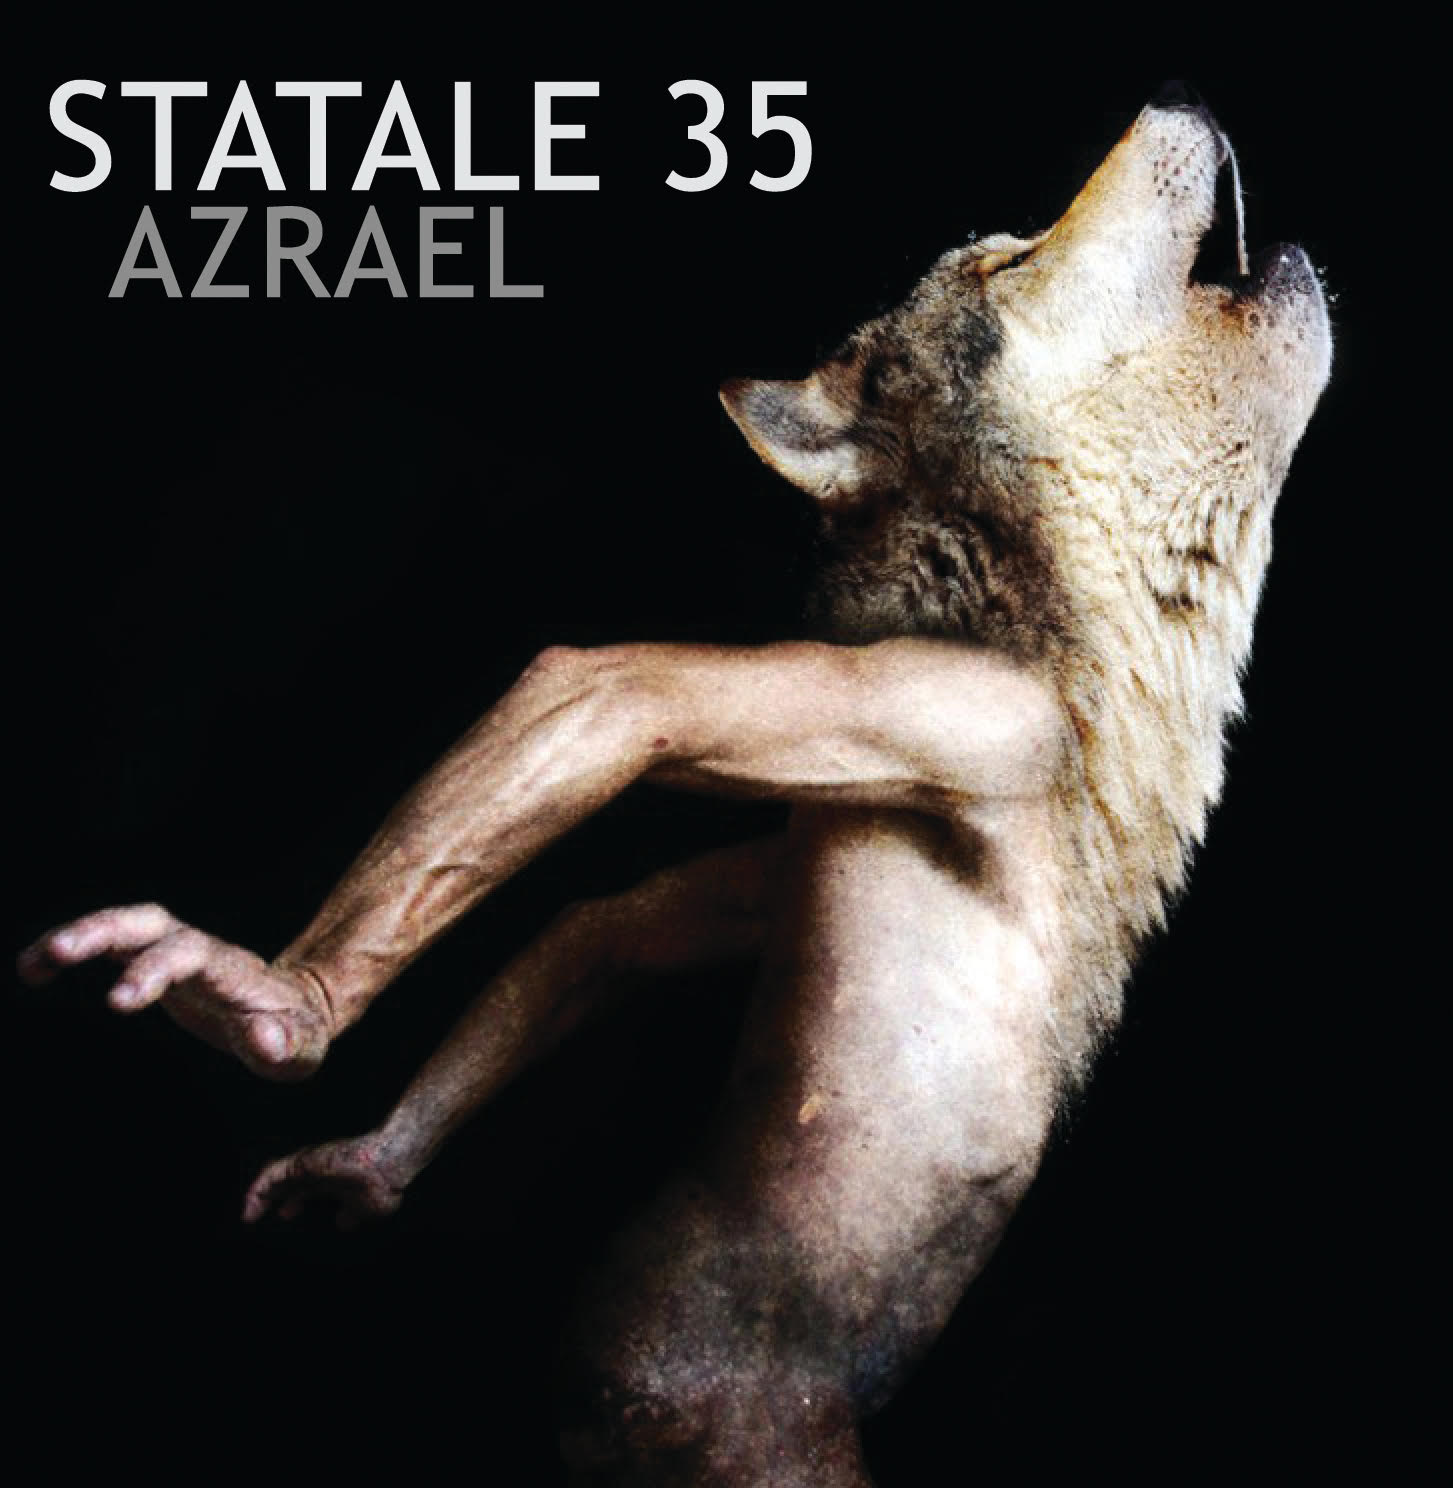 Statale35 Azrael